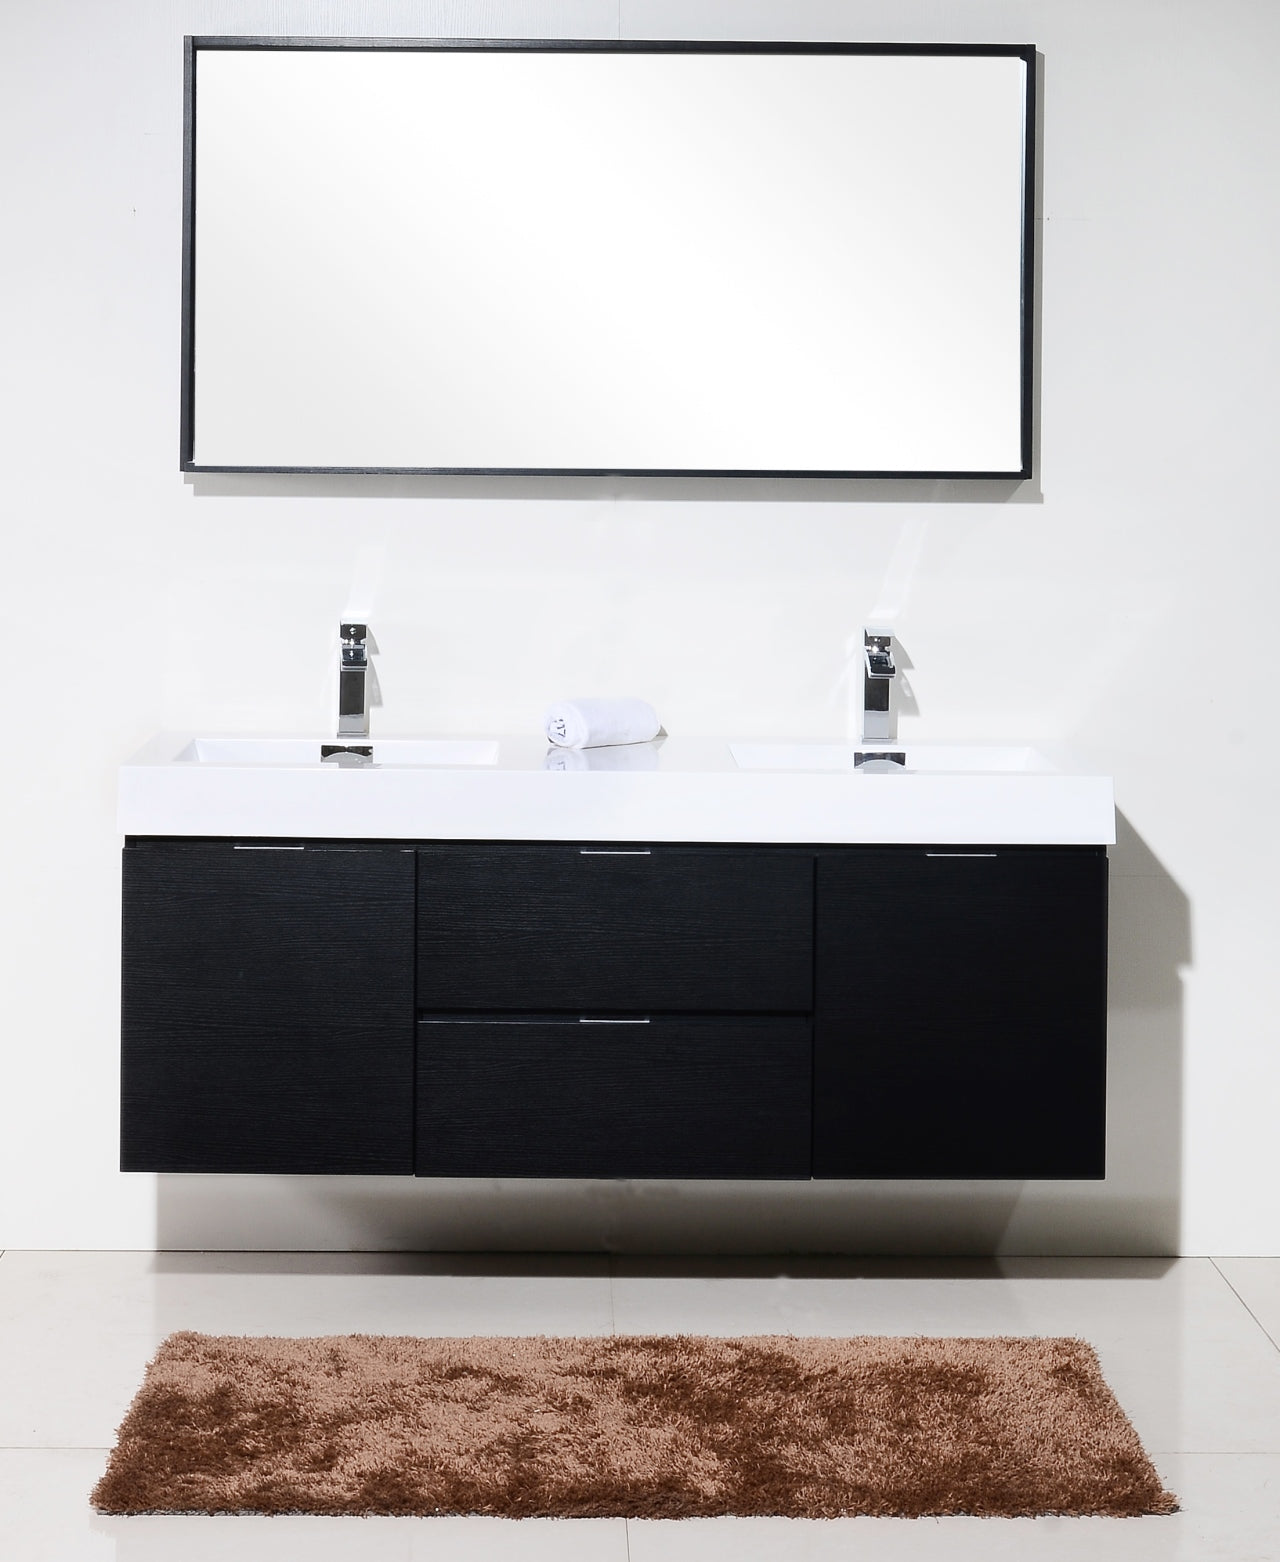 "BLISS- 60"" Black, Double Sink, Wall Mount Bathroom Vanity - Construction Commodities Supply Inc."